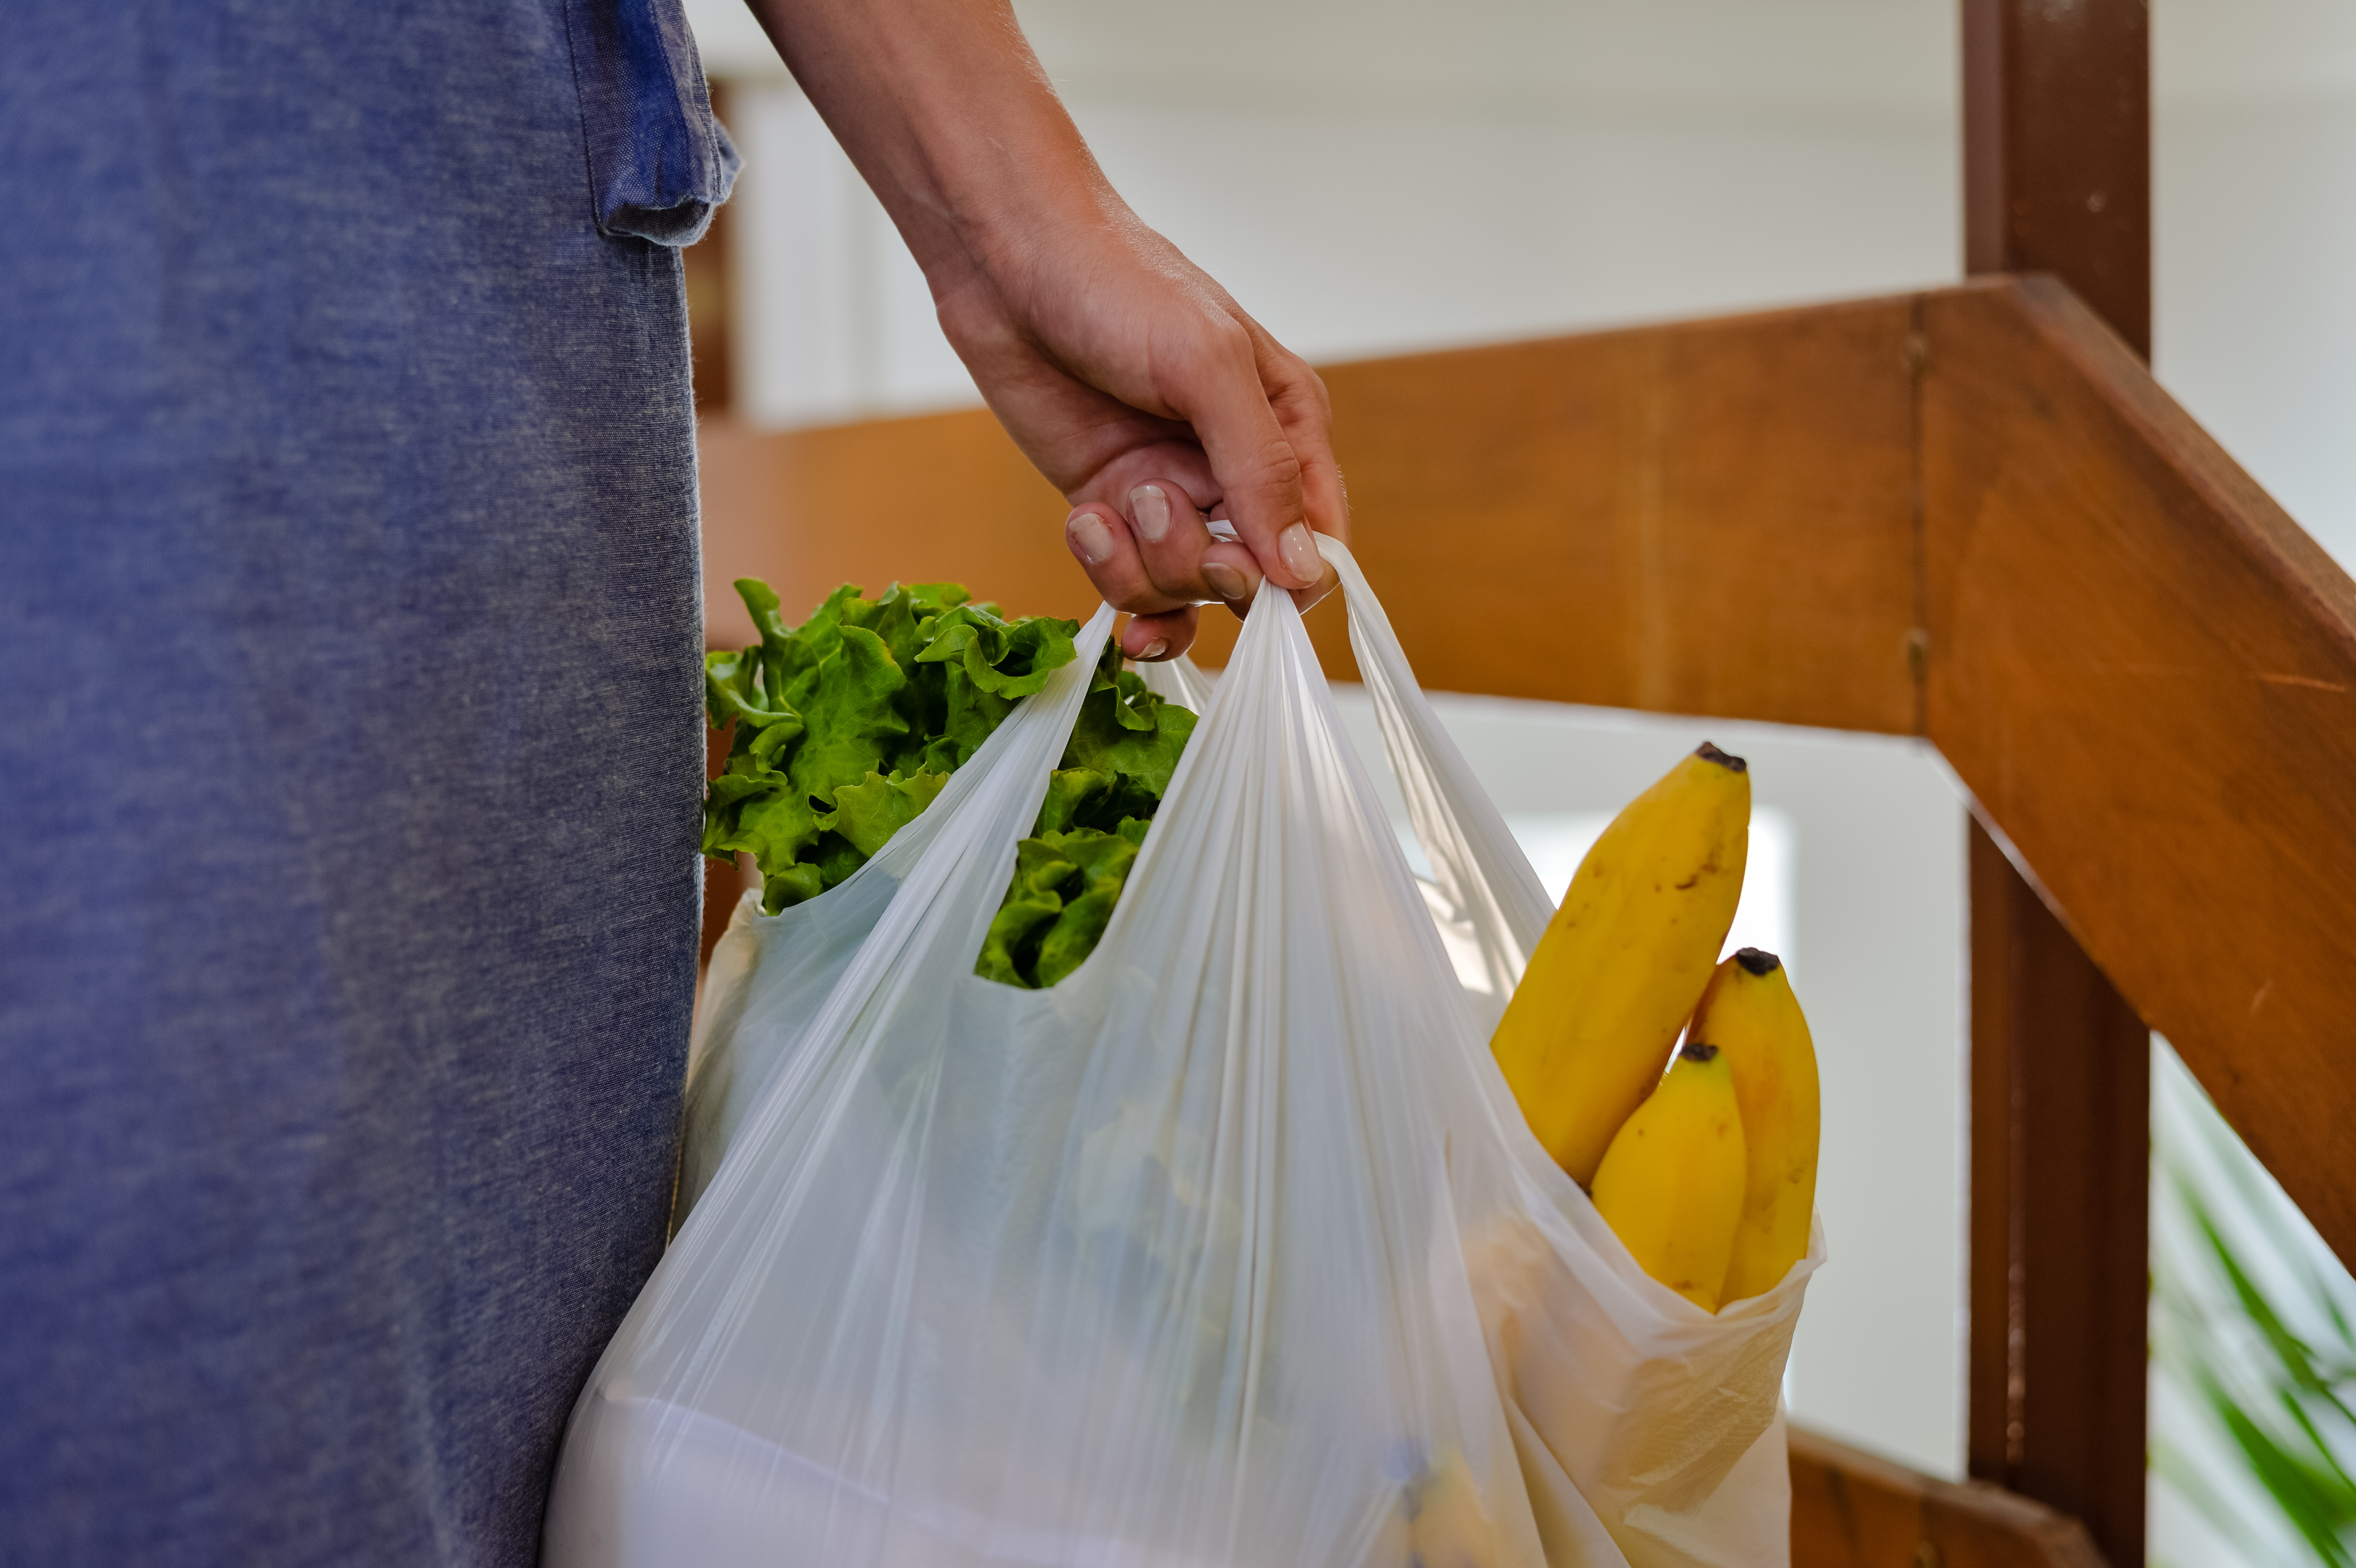 Prince George council to discuss impacts of potential single-use plastic bag ban